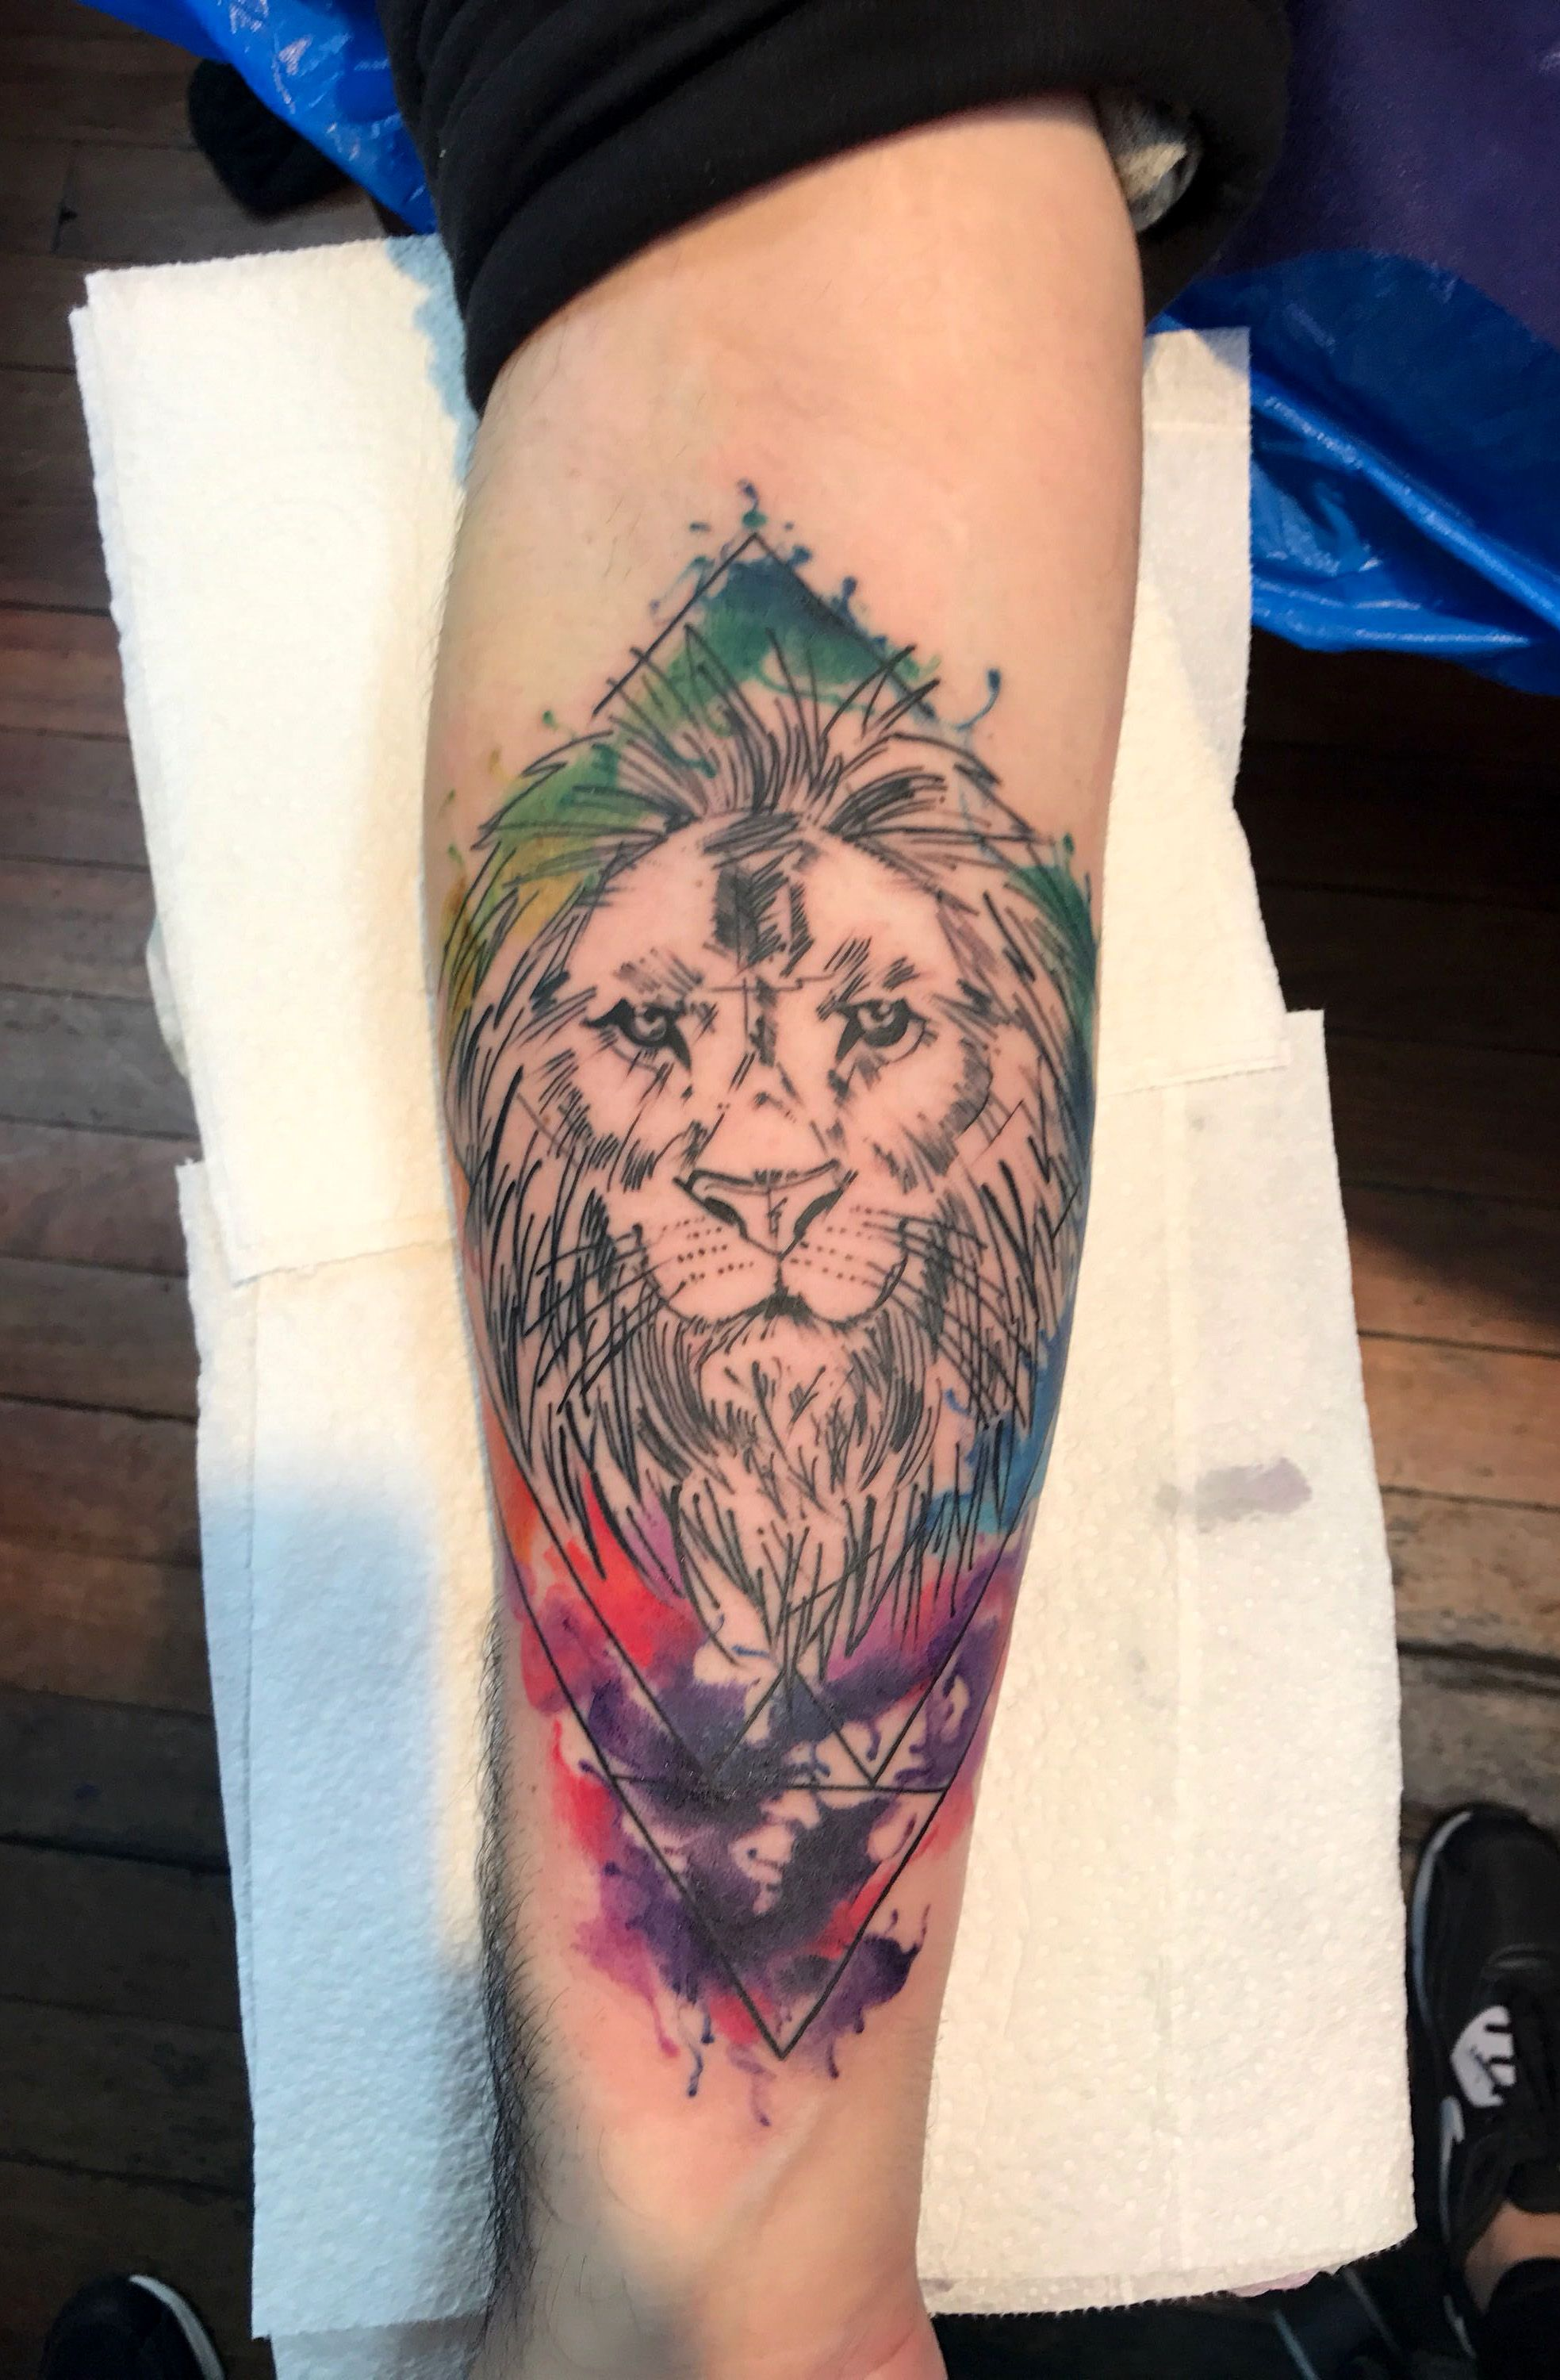 Watercolour Lion tattoo by Lauren Fox at Authentink in